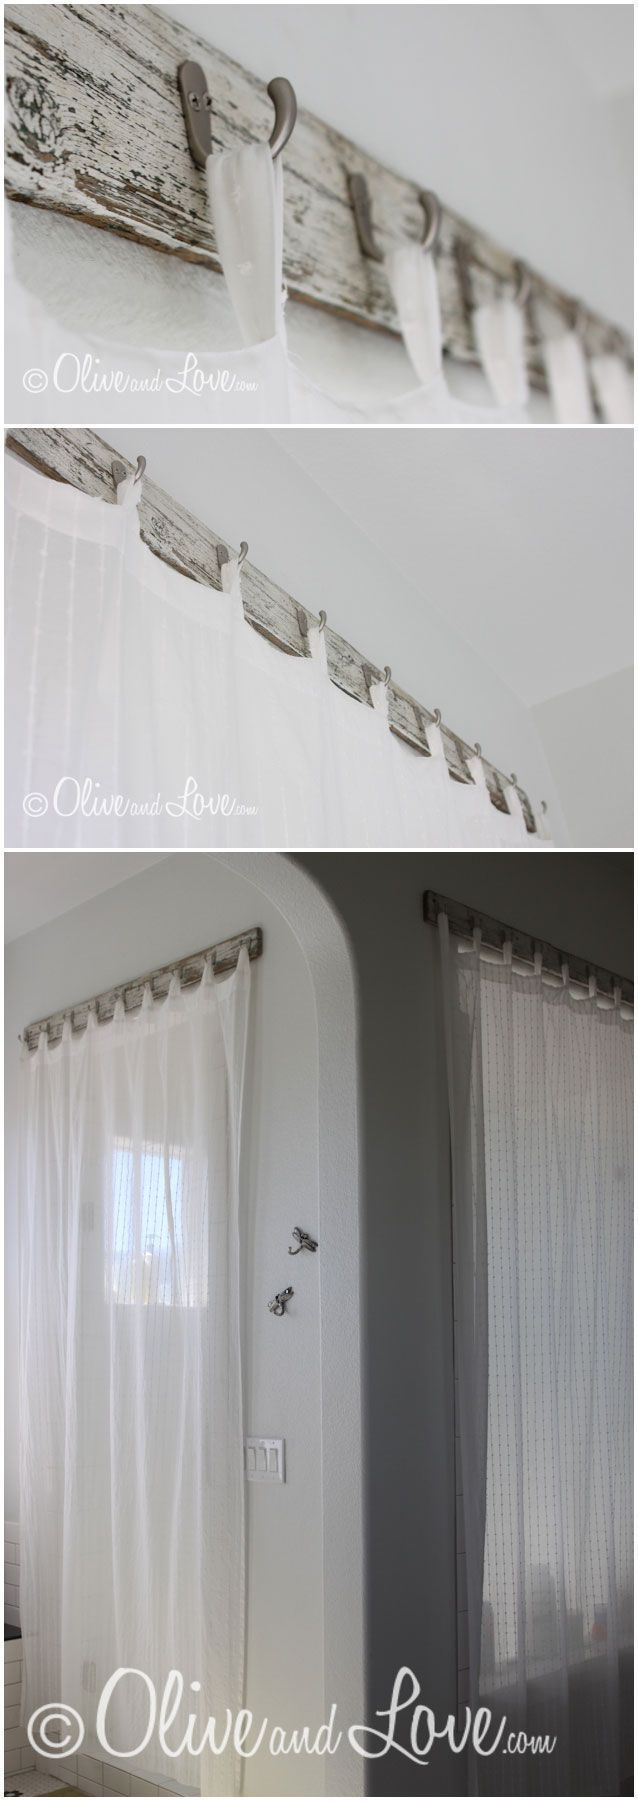 The best images about curtains on pinterest nautical rope